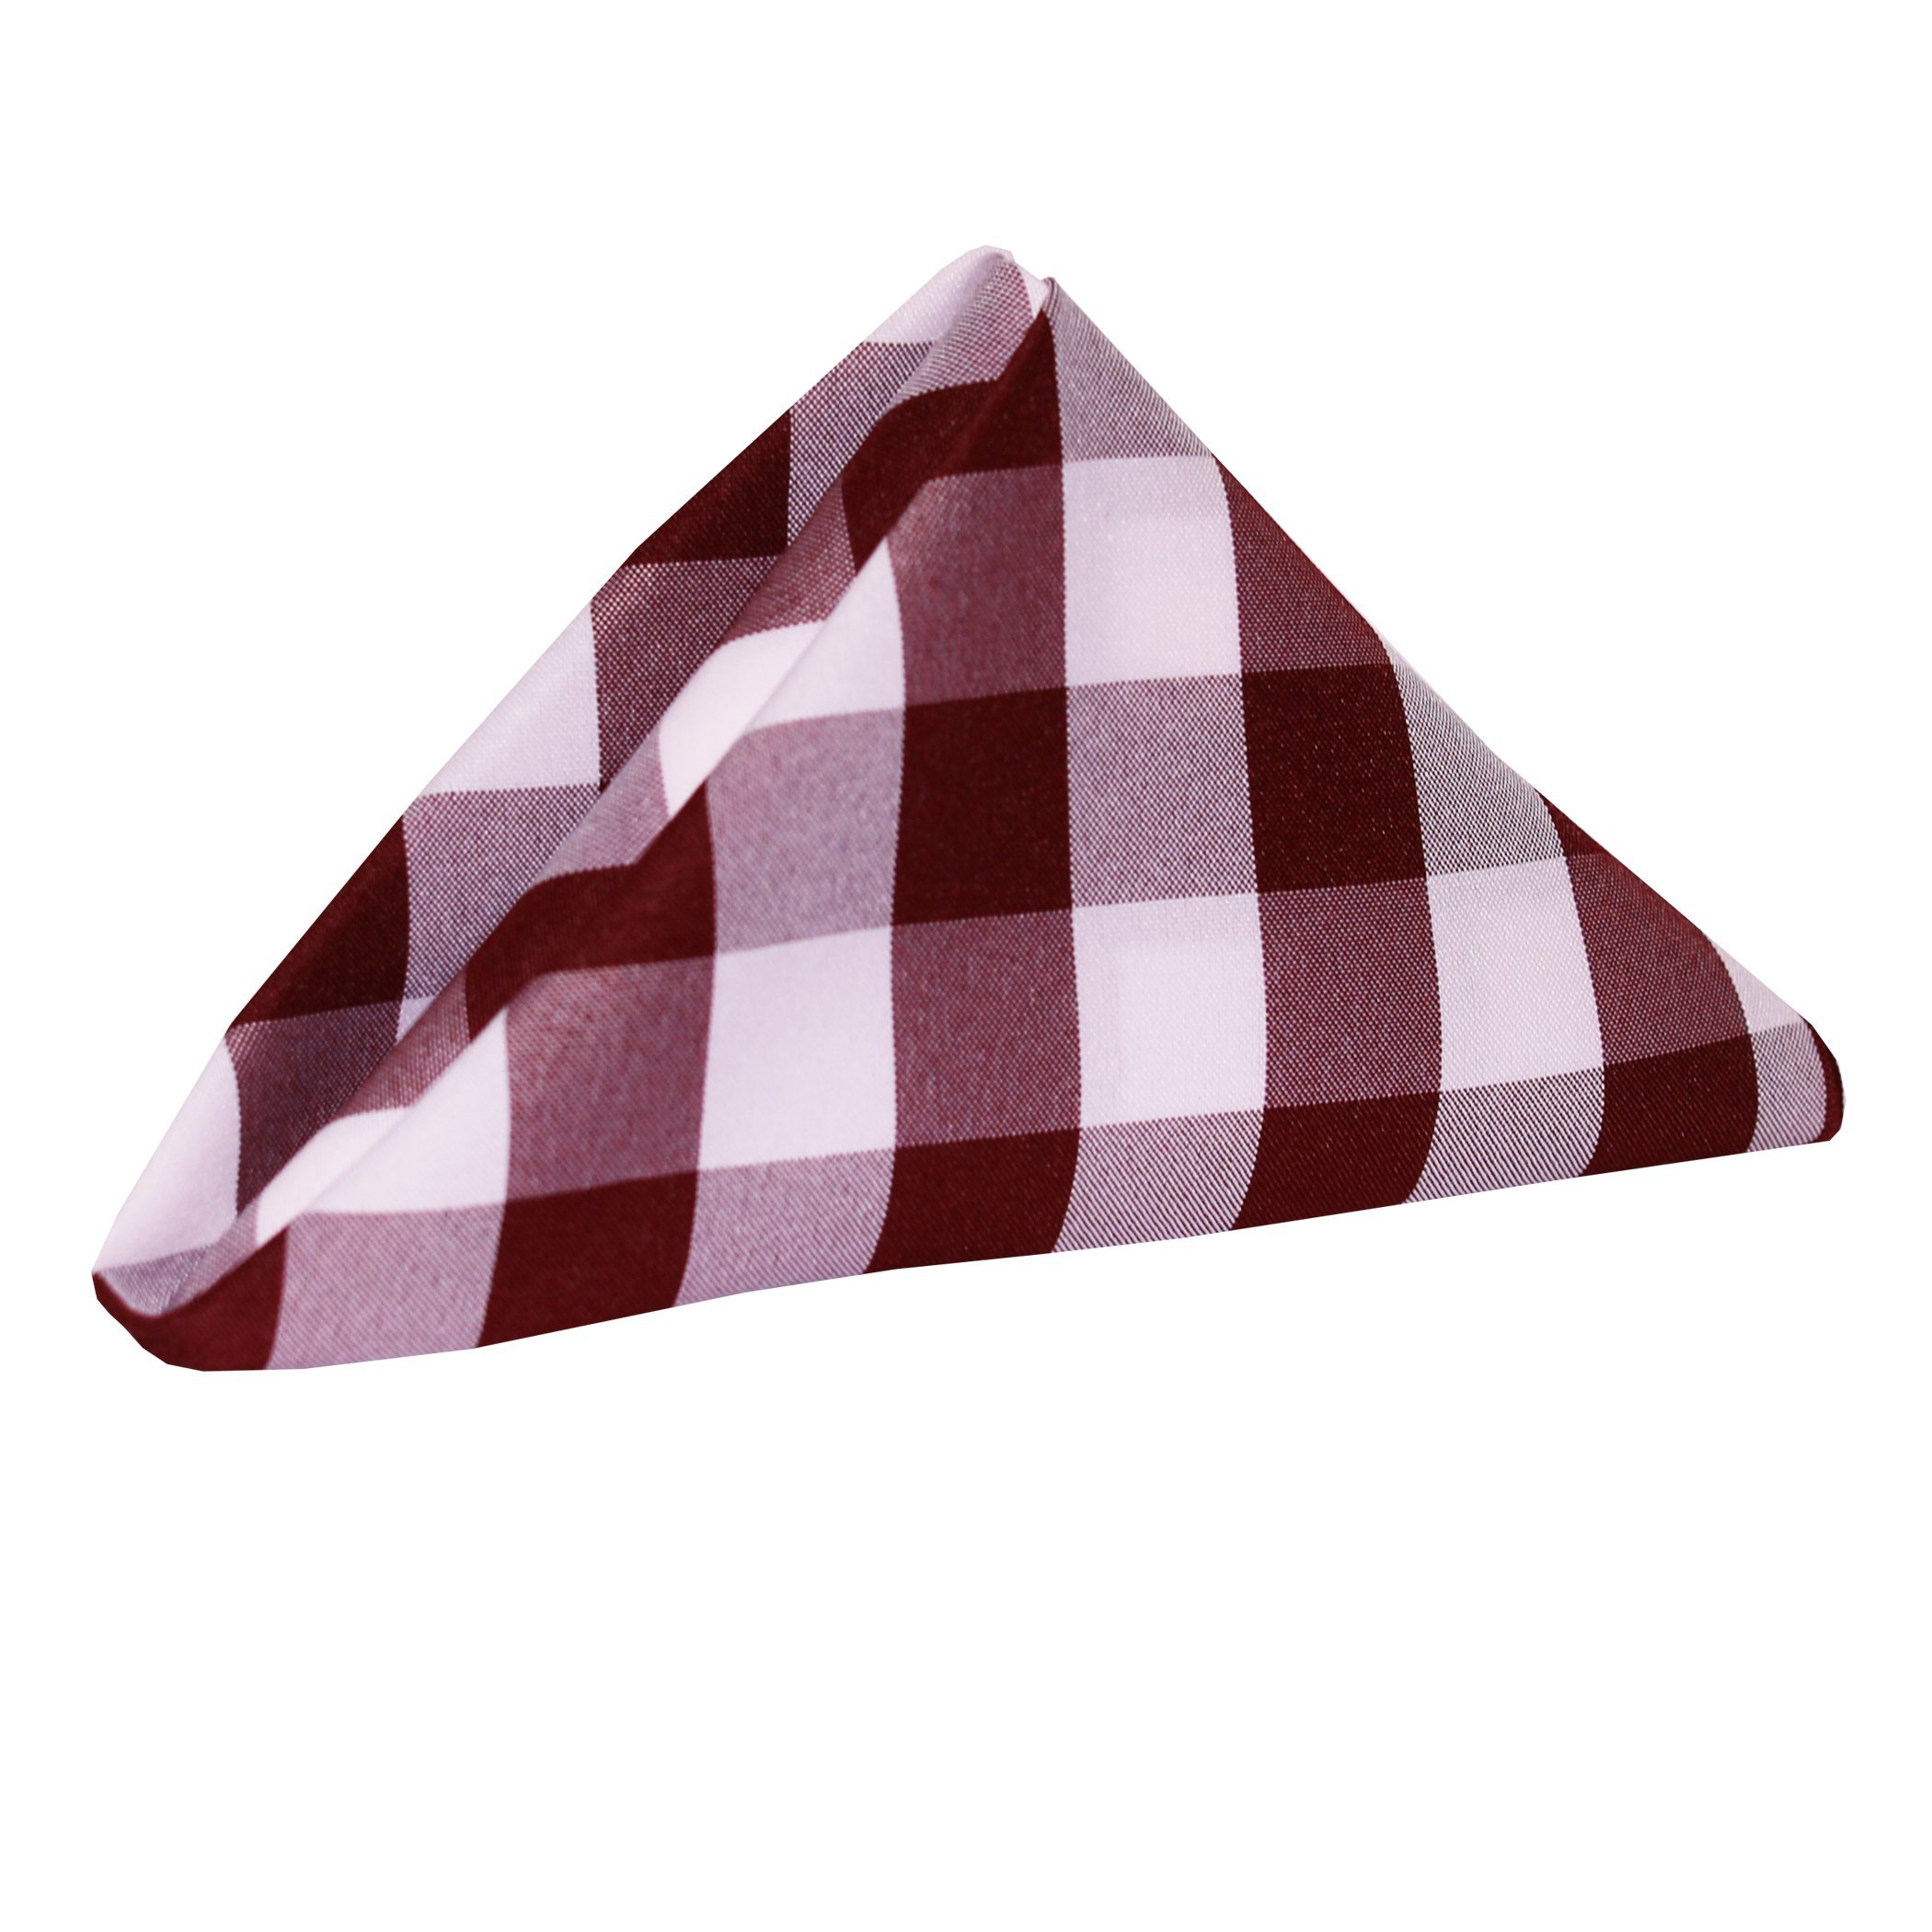 Ultimate Textile -2 Dozen- 20 x 20-Inch Polyester Checkered Cloth Dinner Napkins, Burgundy and White